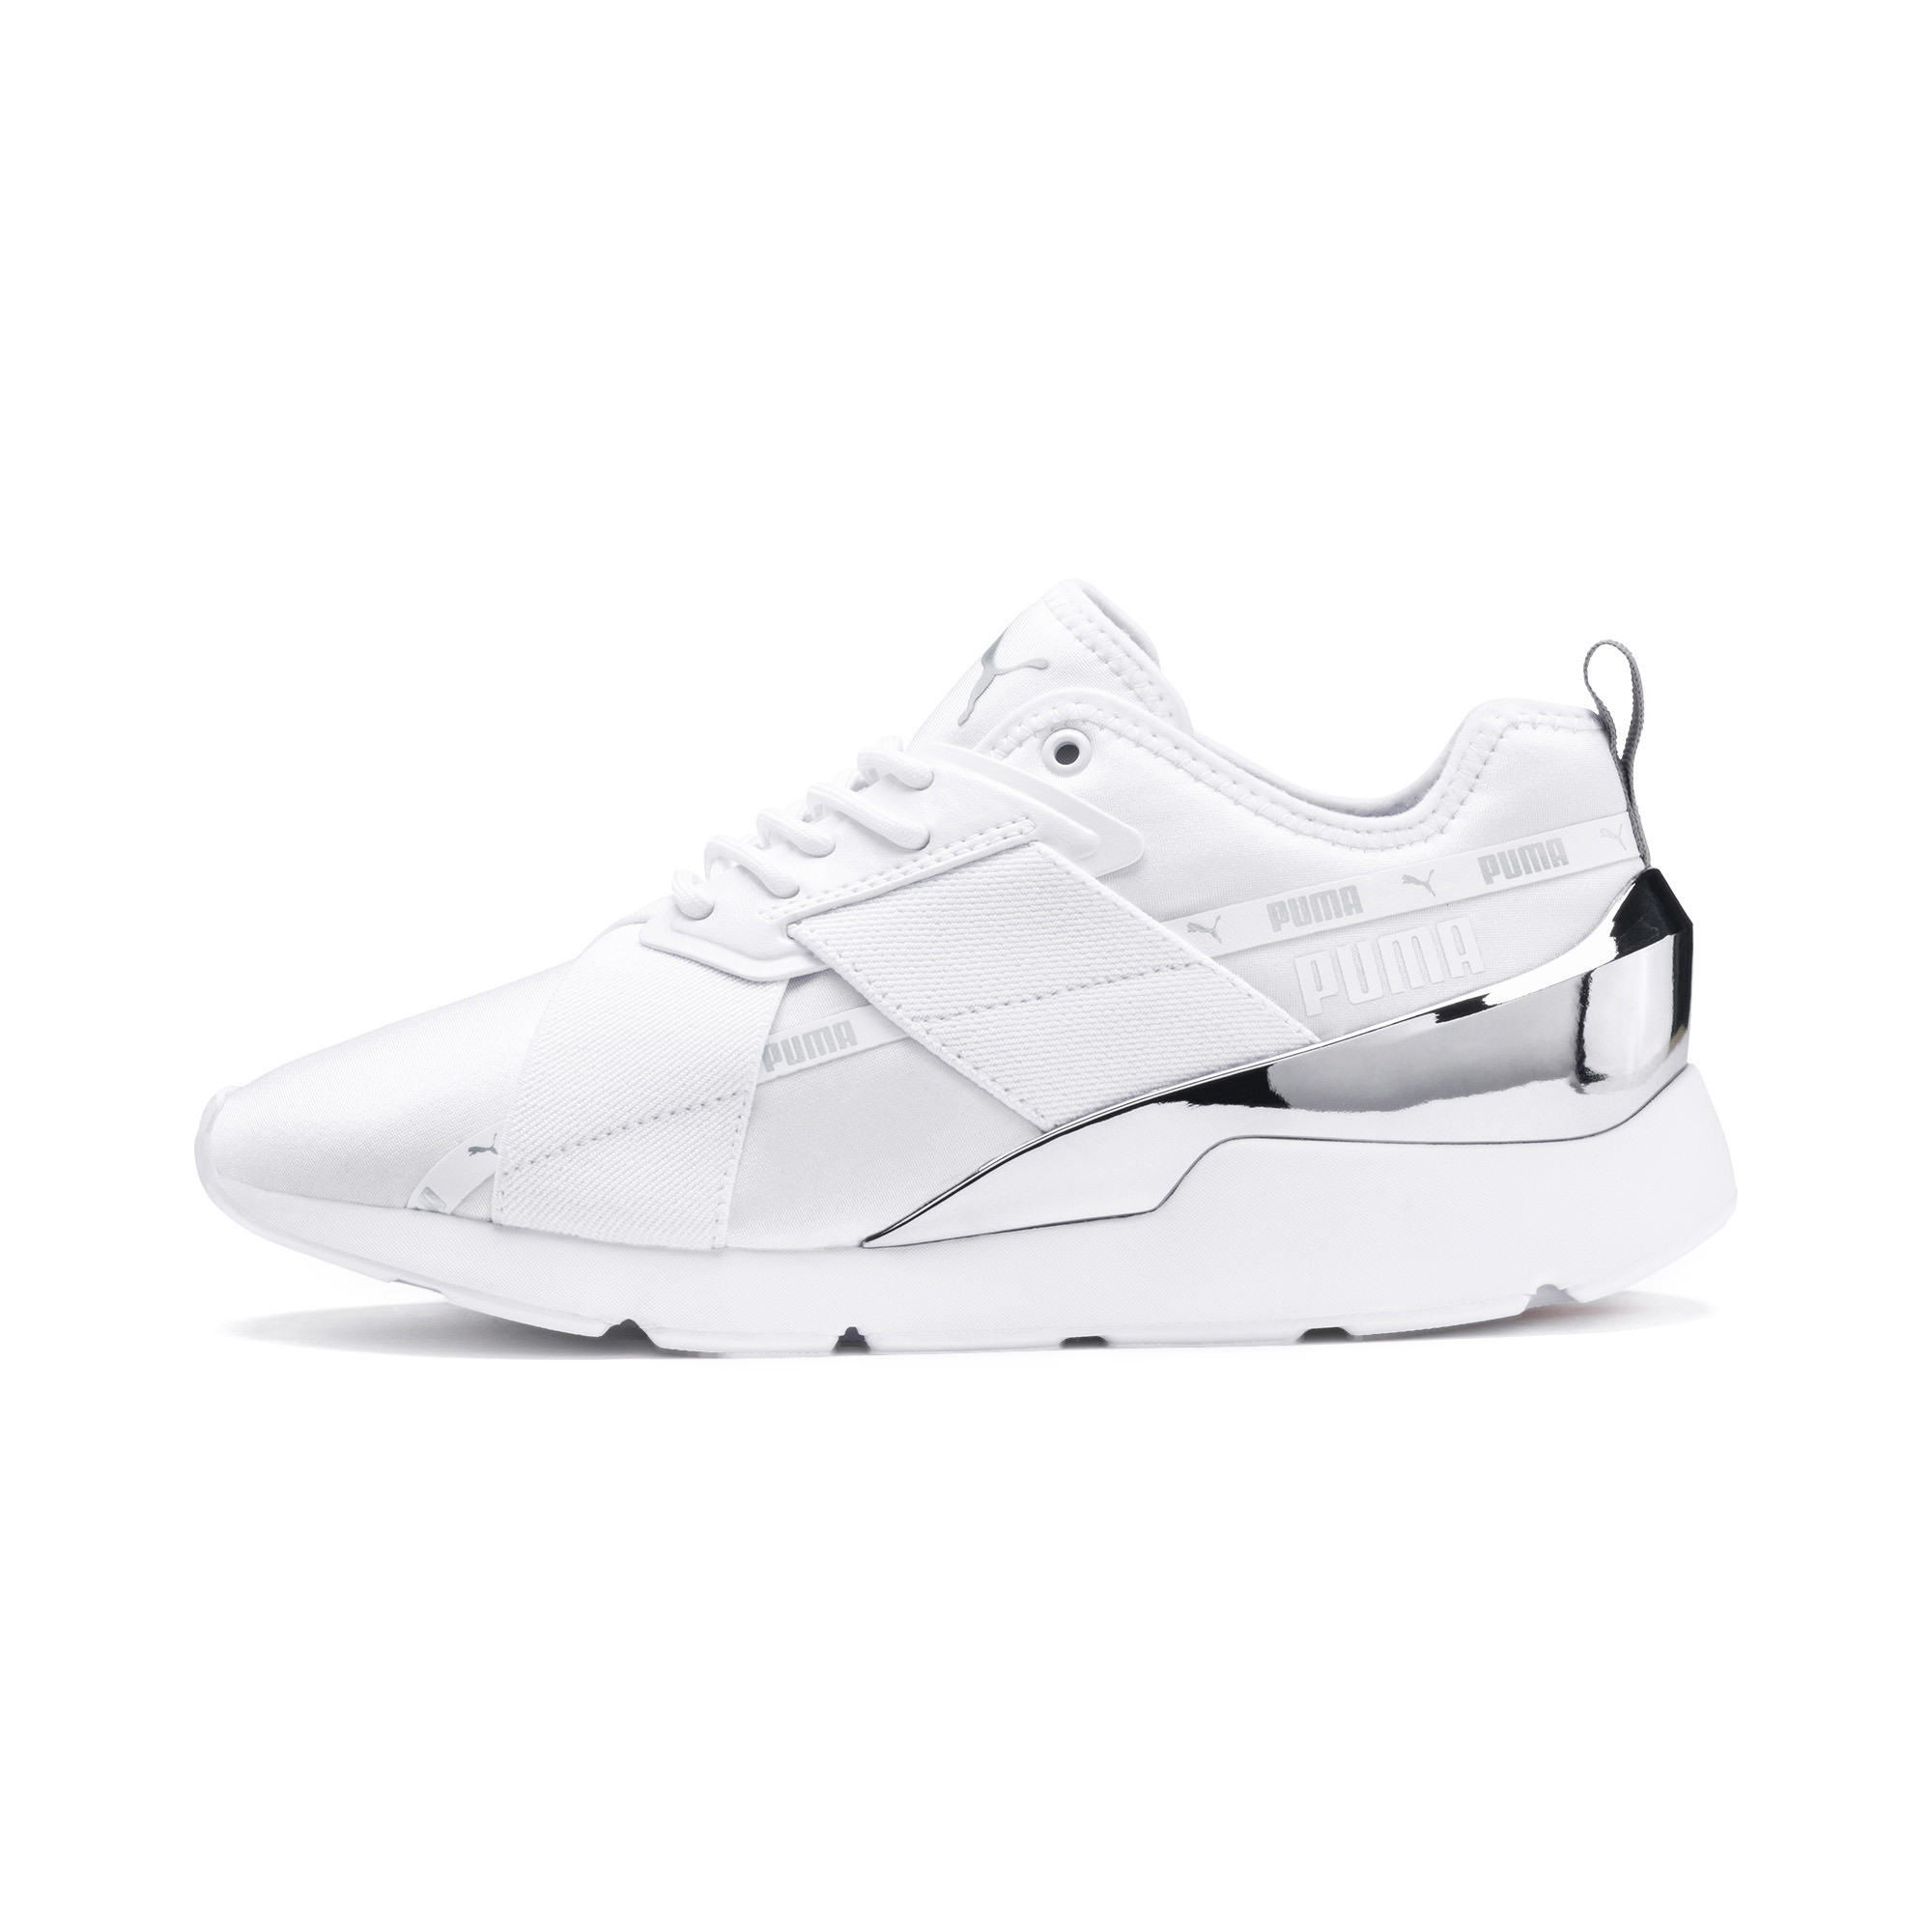 PUMA-Muse-X-2-Metallic-Women-039-s-Sneakers-Women-Shoe-Evolution thumbnail 4